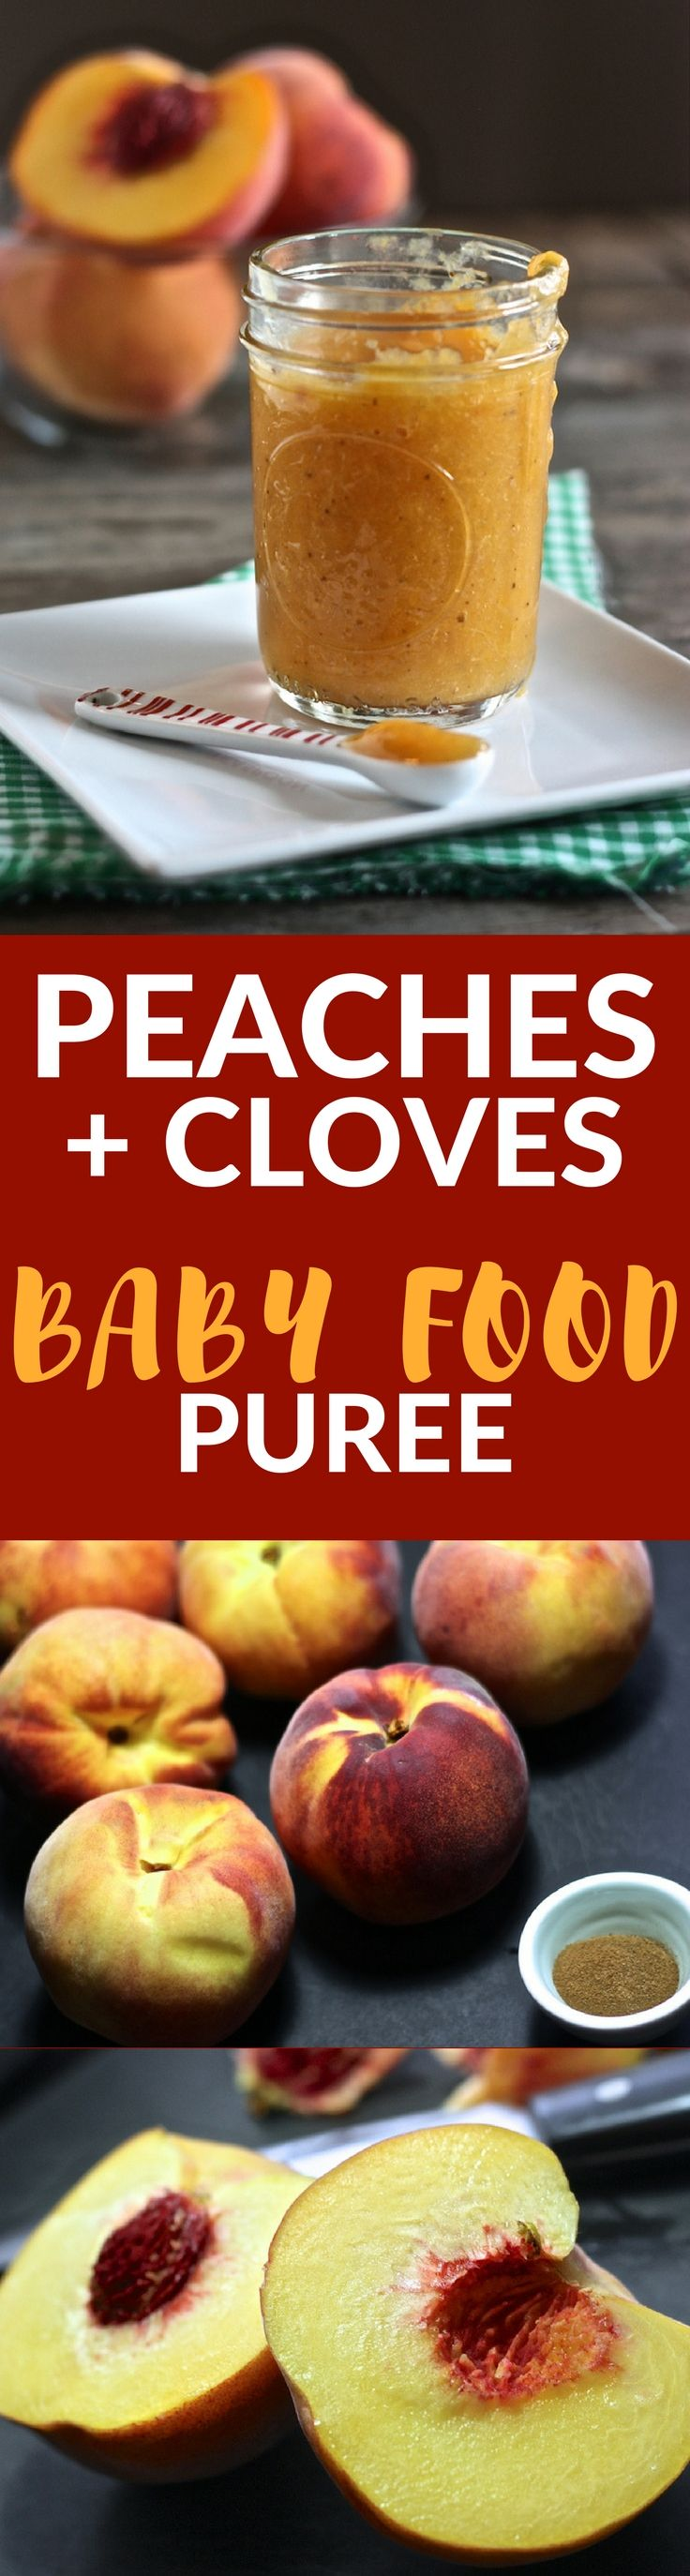 This lick-your-spoon delicious Peaches + Cloves Baby Food Puree will feature the favors of the summer that your baby will love!